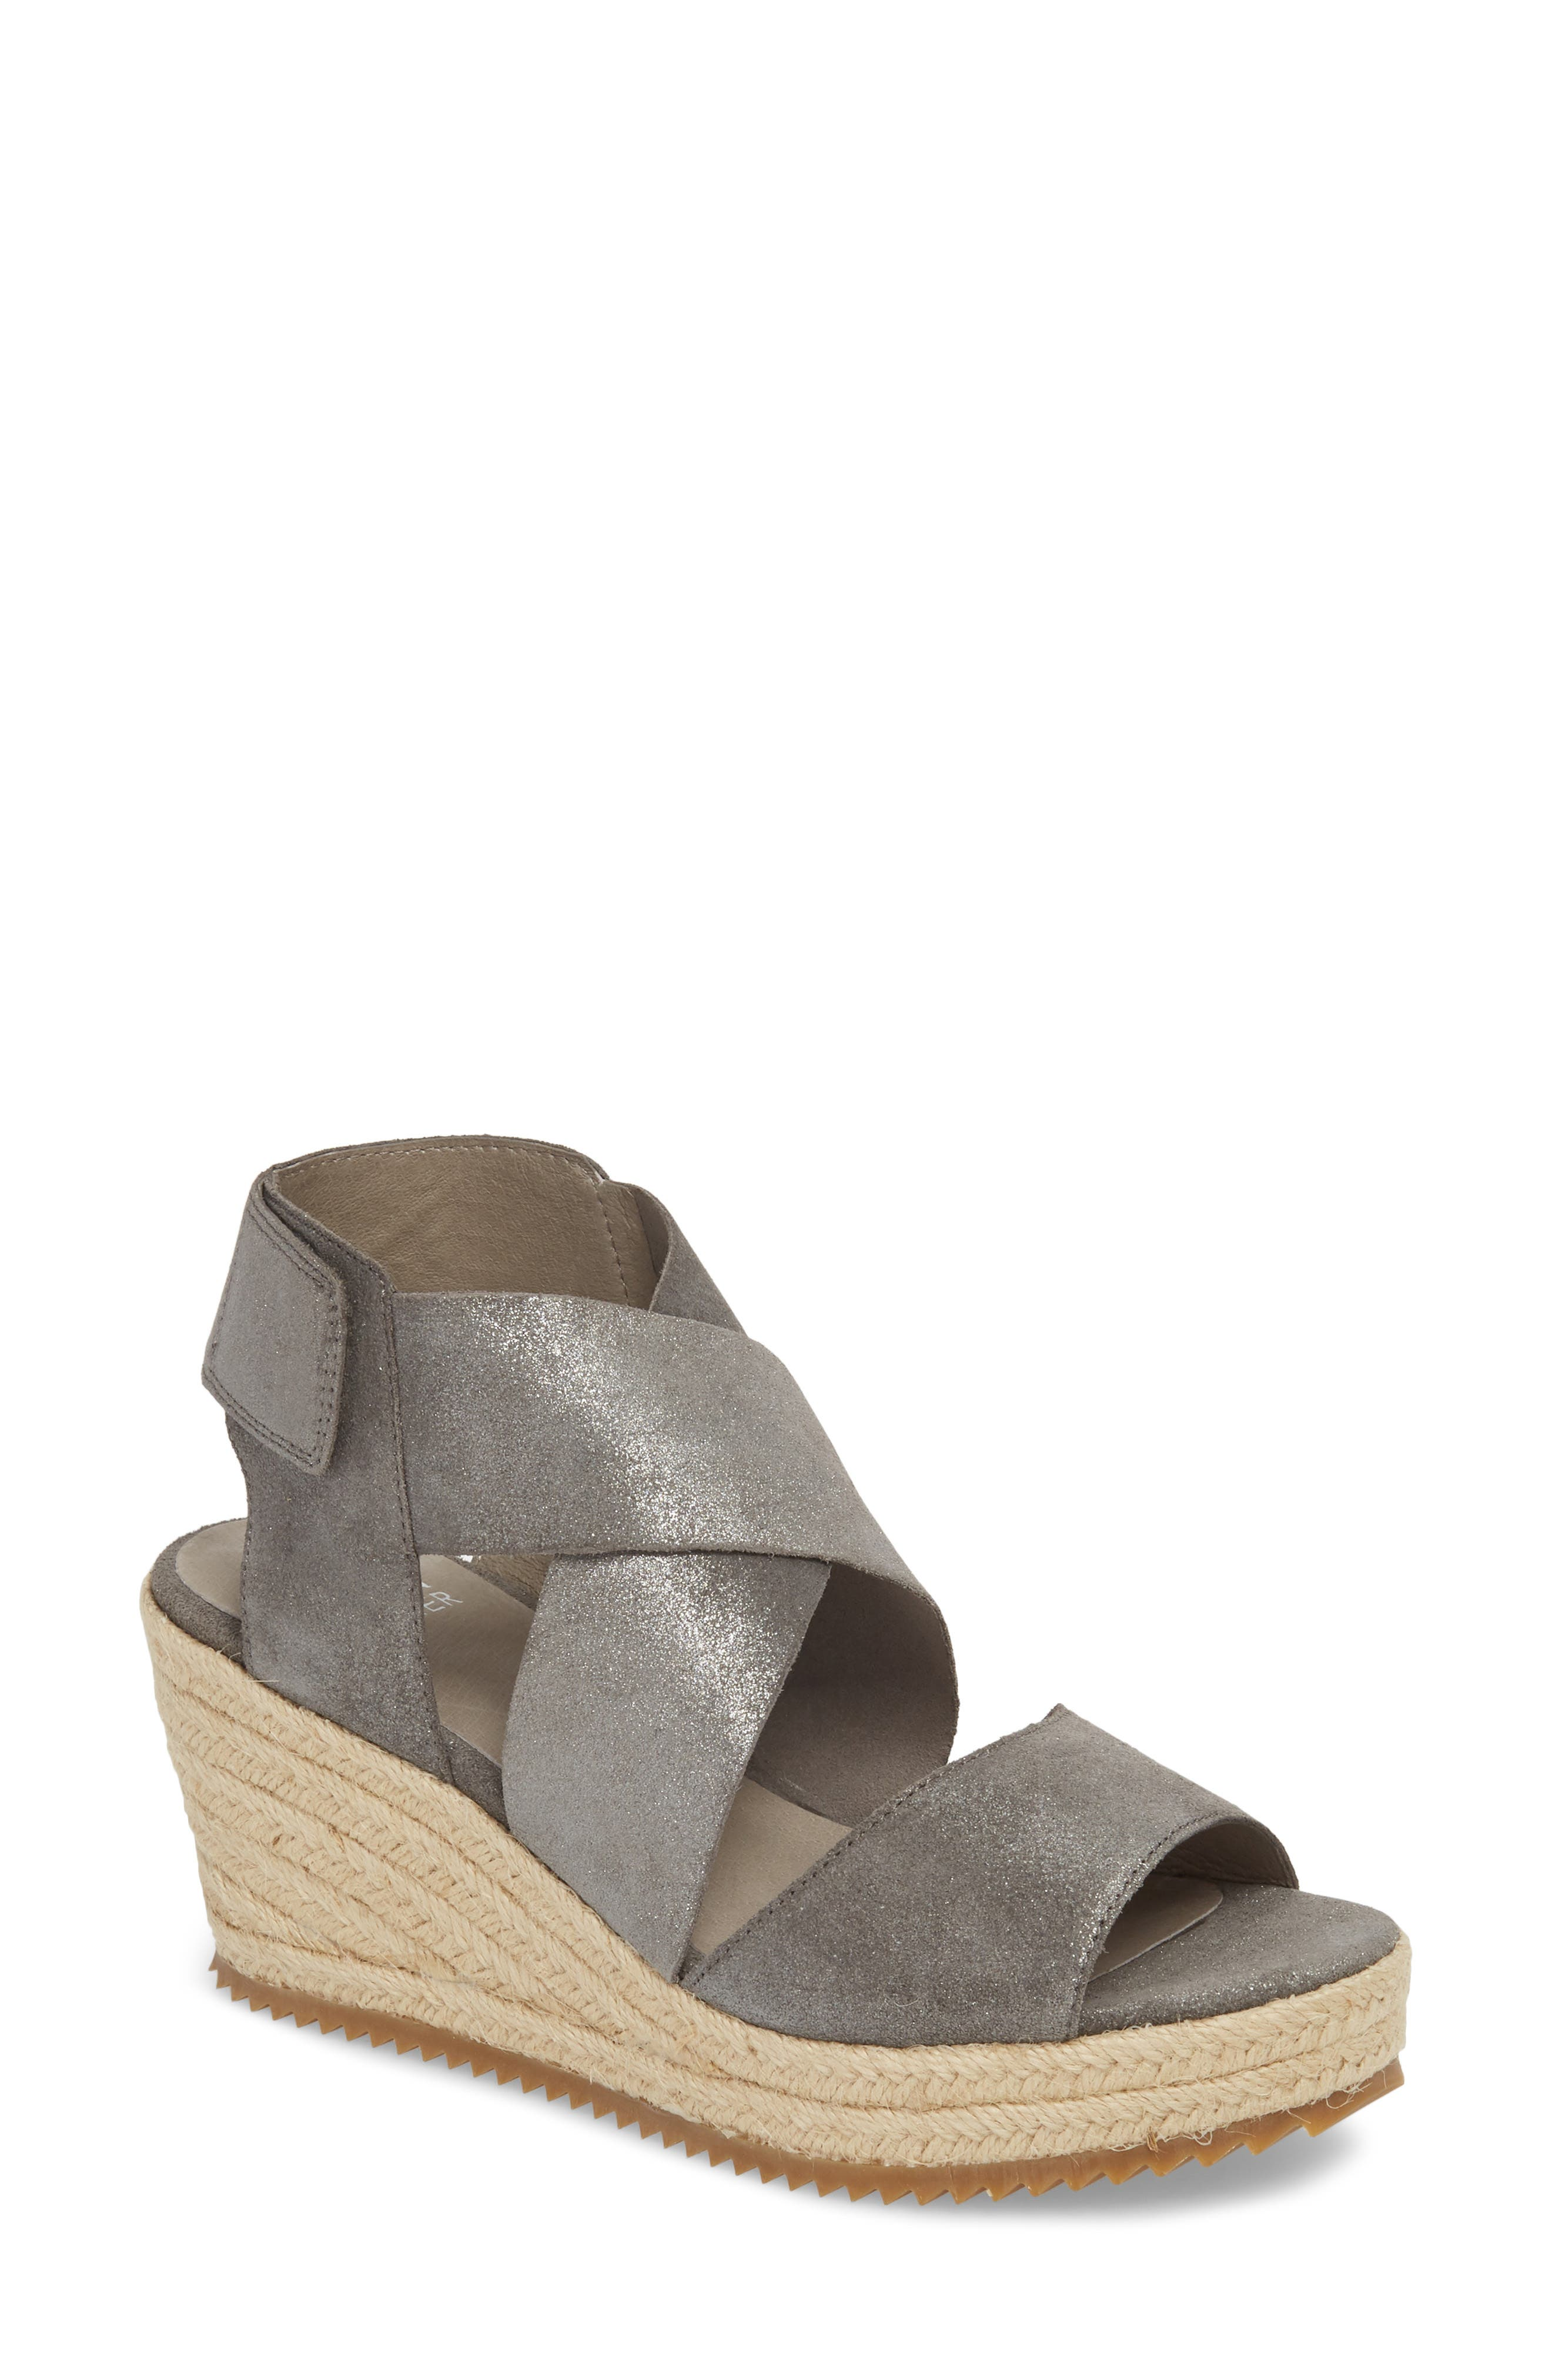 'Willow' Espadrille Wedge Sandal,                         Main,                         color, Pewter Metallic Suede